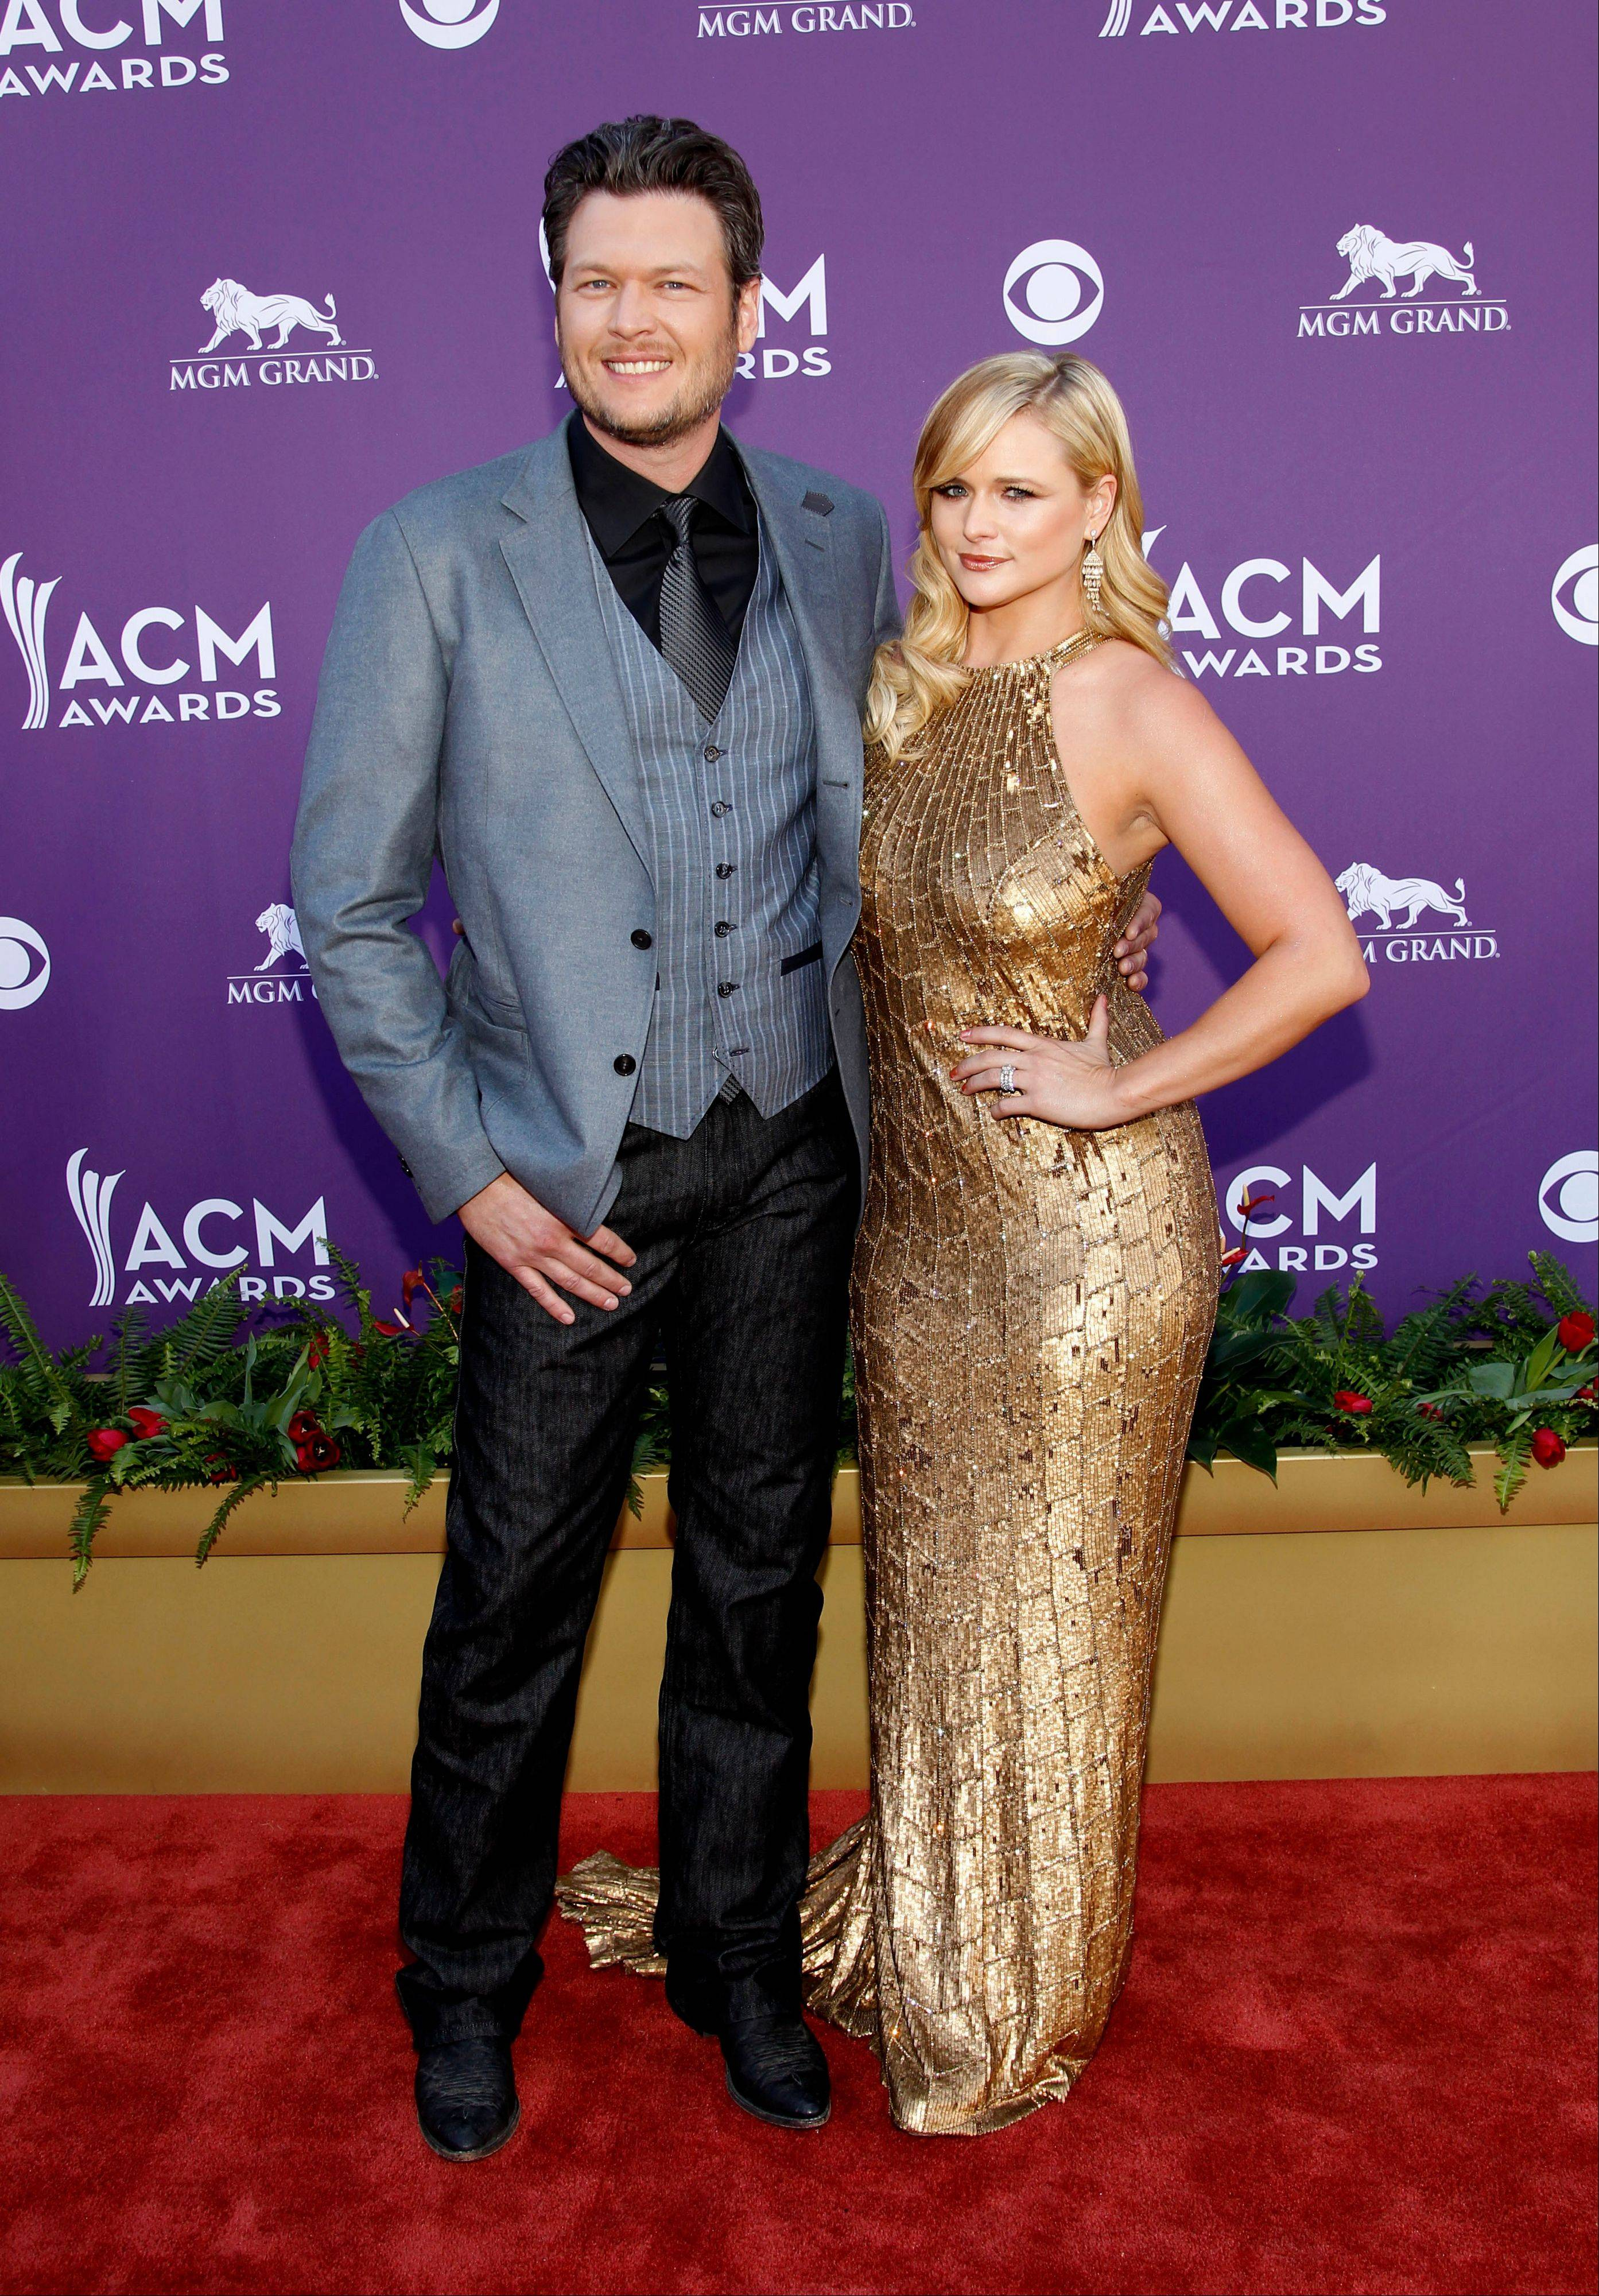 ACM co-host Blake Shelton takes a moment to walk the press line with his wife, singer-songwriter Miranda Lambert, before joining Reba McEntire to emcee the event.